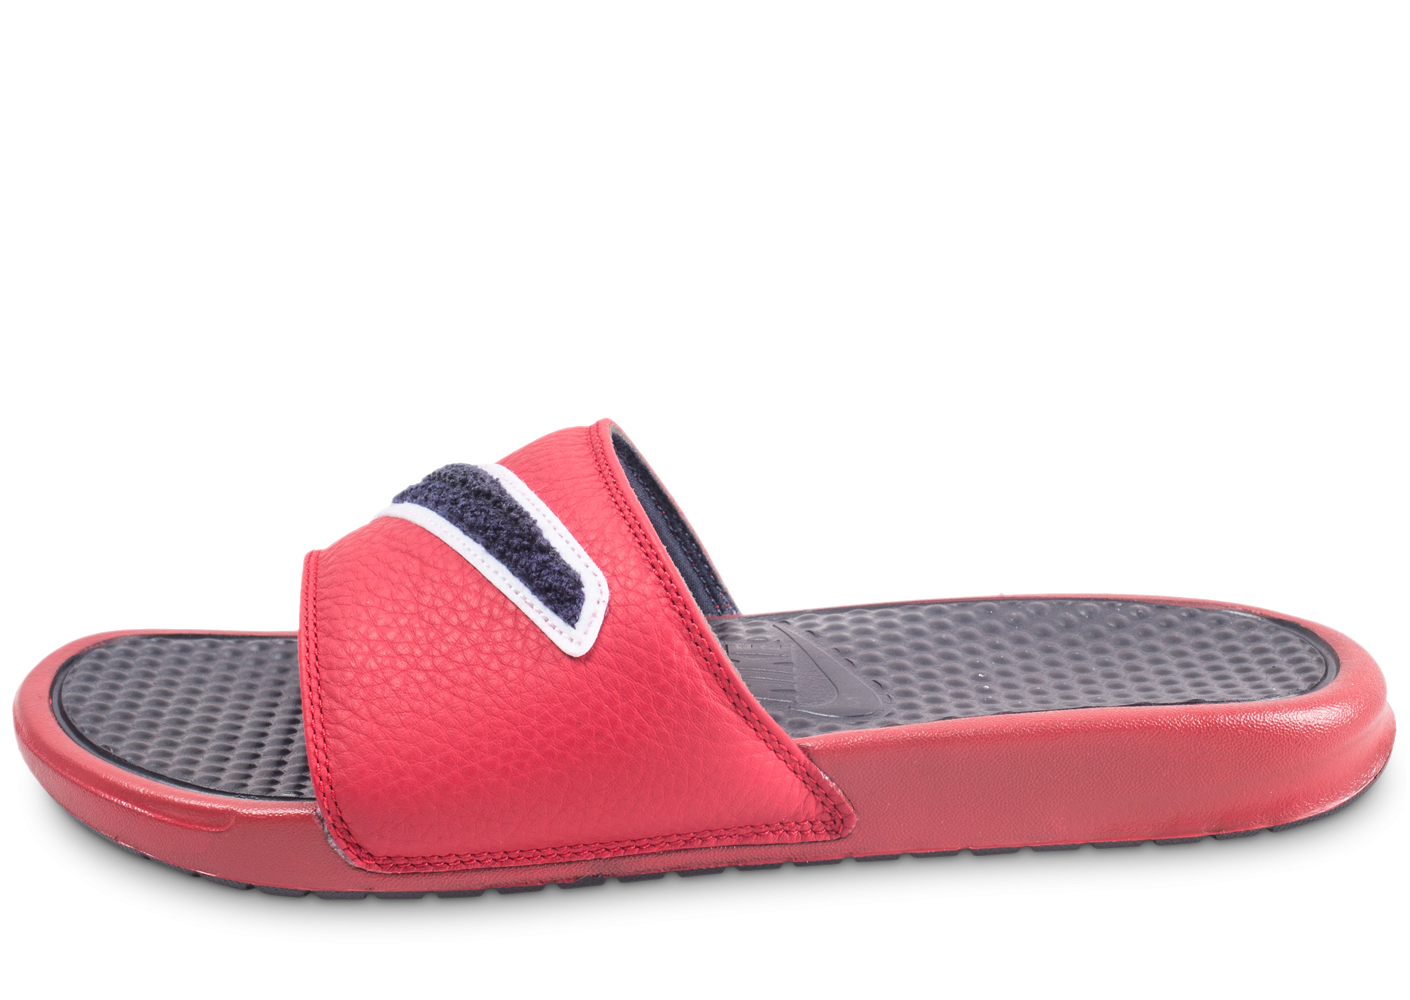 official photos 5dcde 89640 Nike Benassi JDI rouge - Chaussures Baskets homme - Chausport